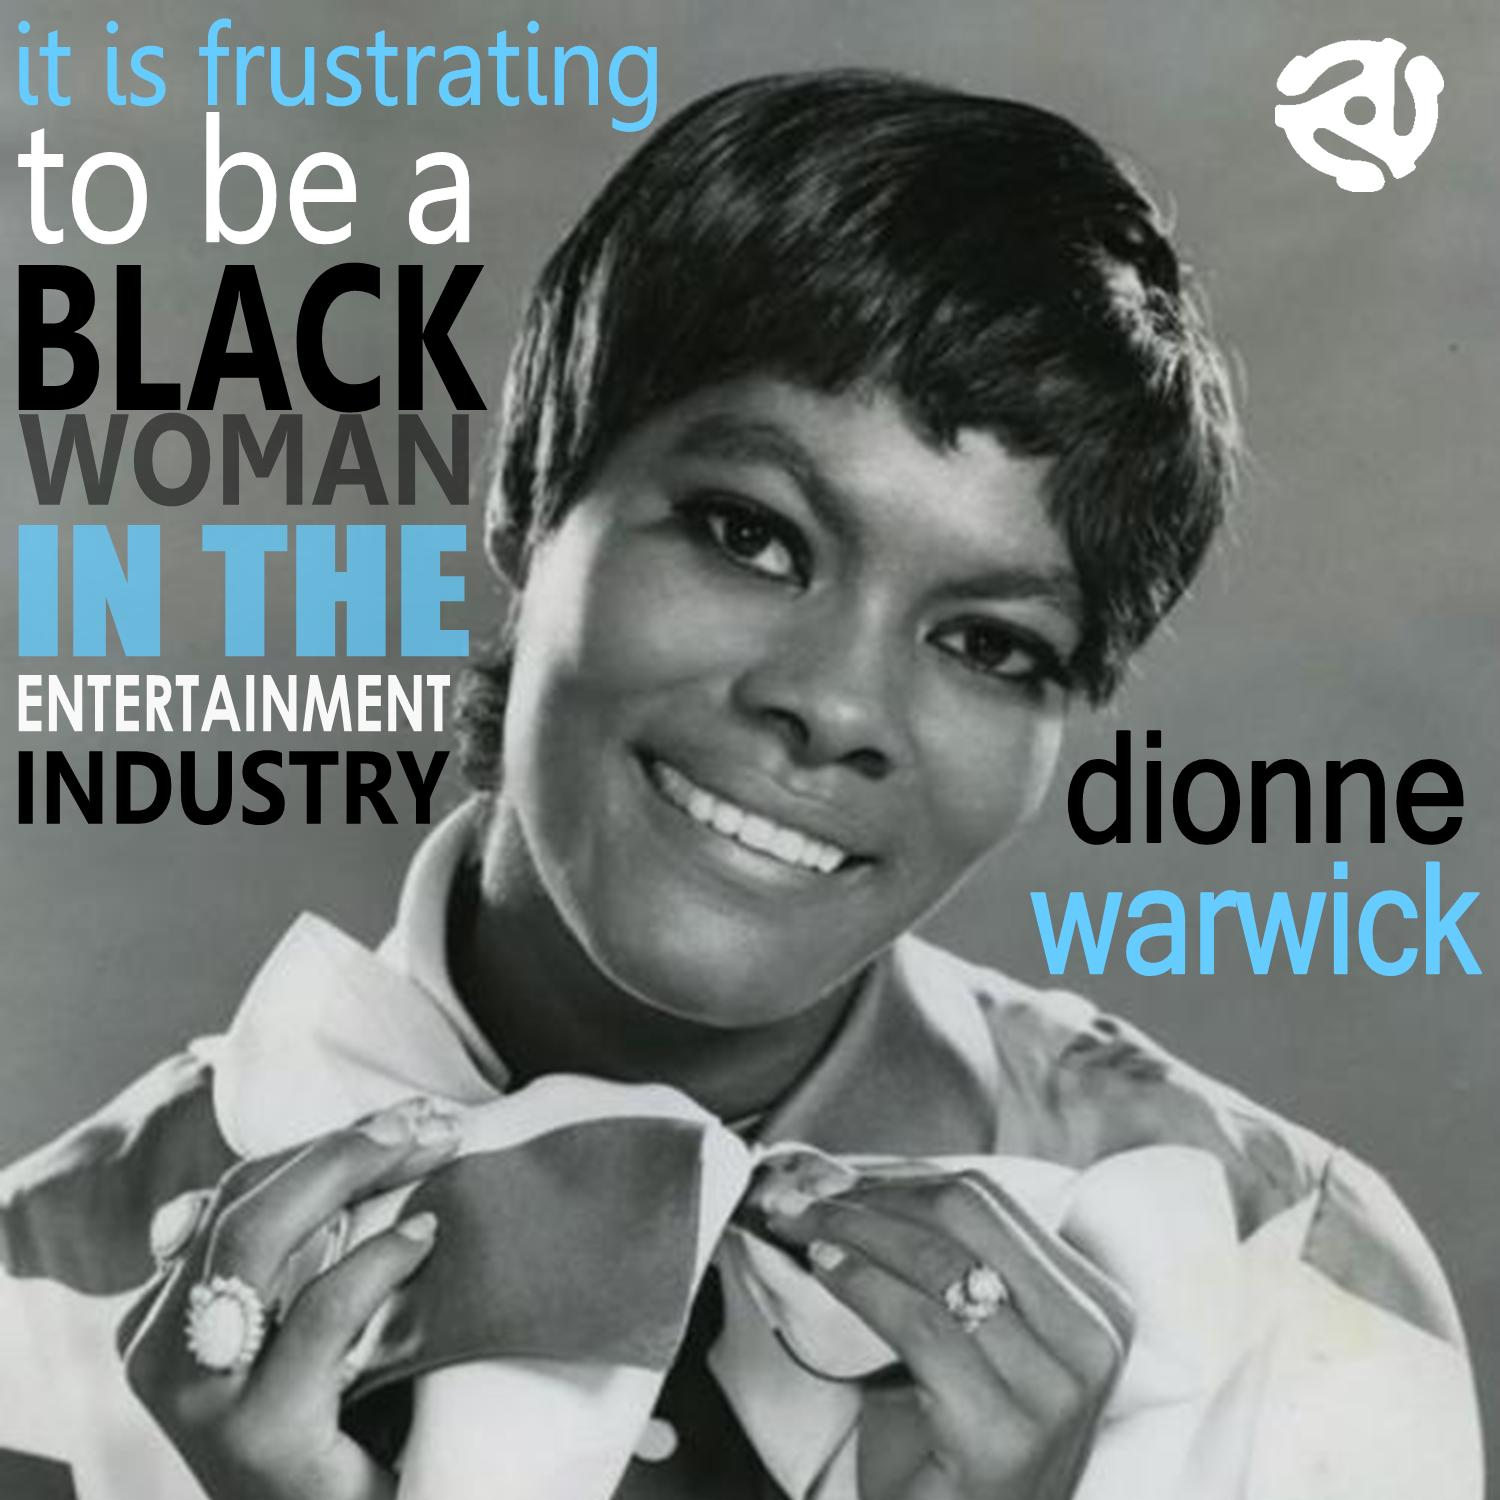 Dionne Warwick's quote #2